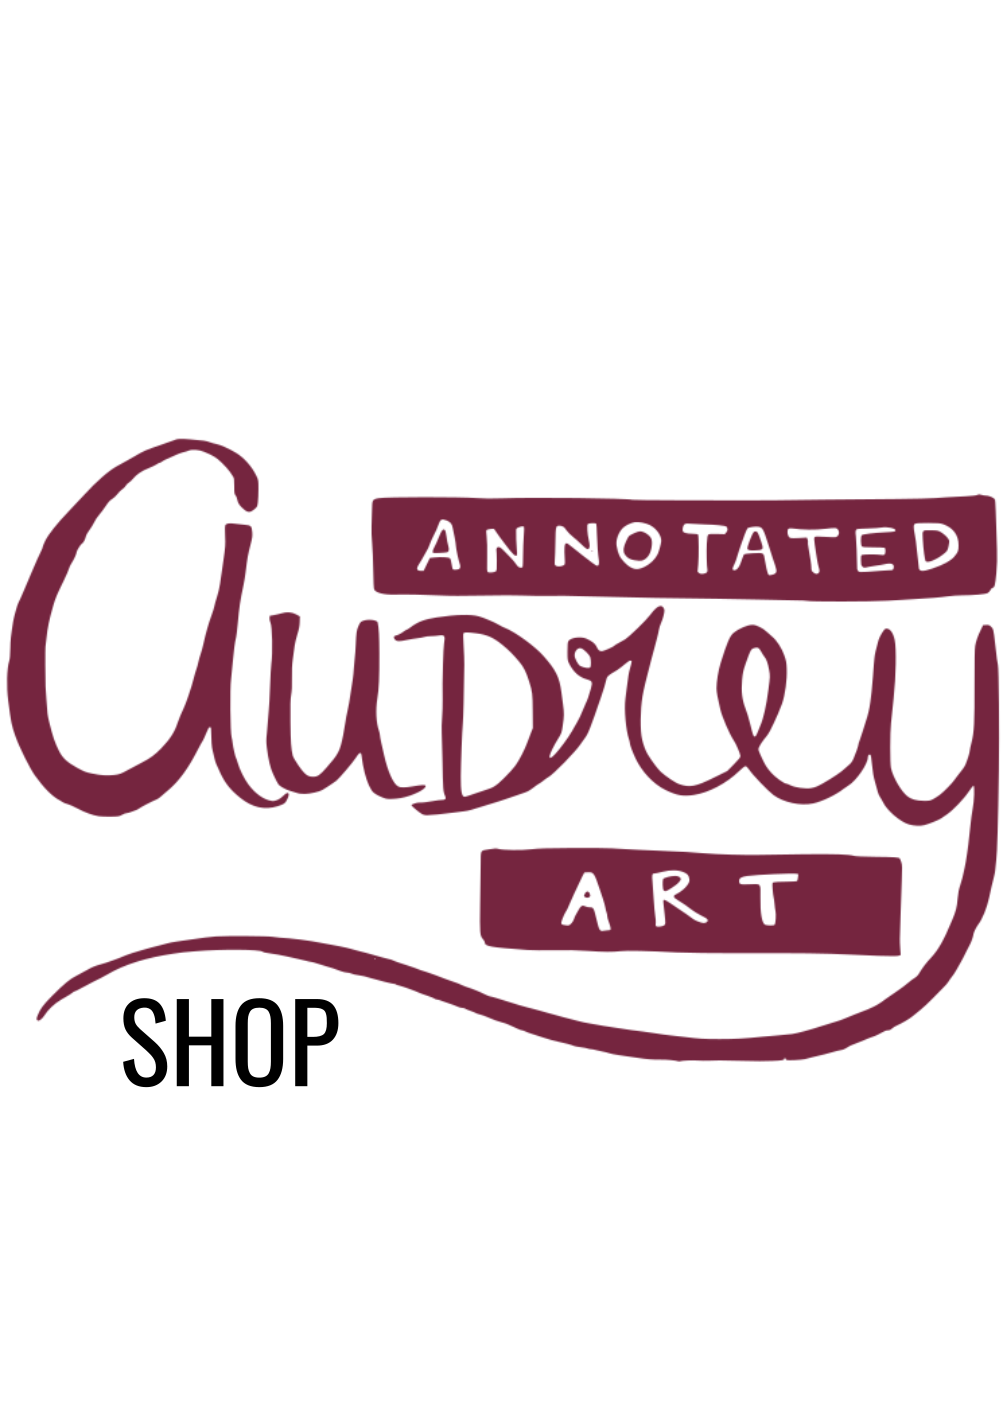 ANNOTATED AUDREY ART ONLINE STORE